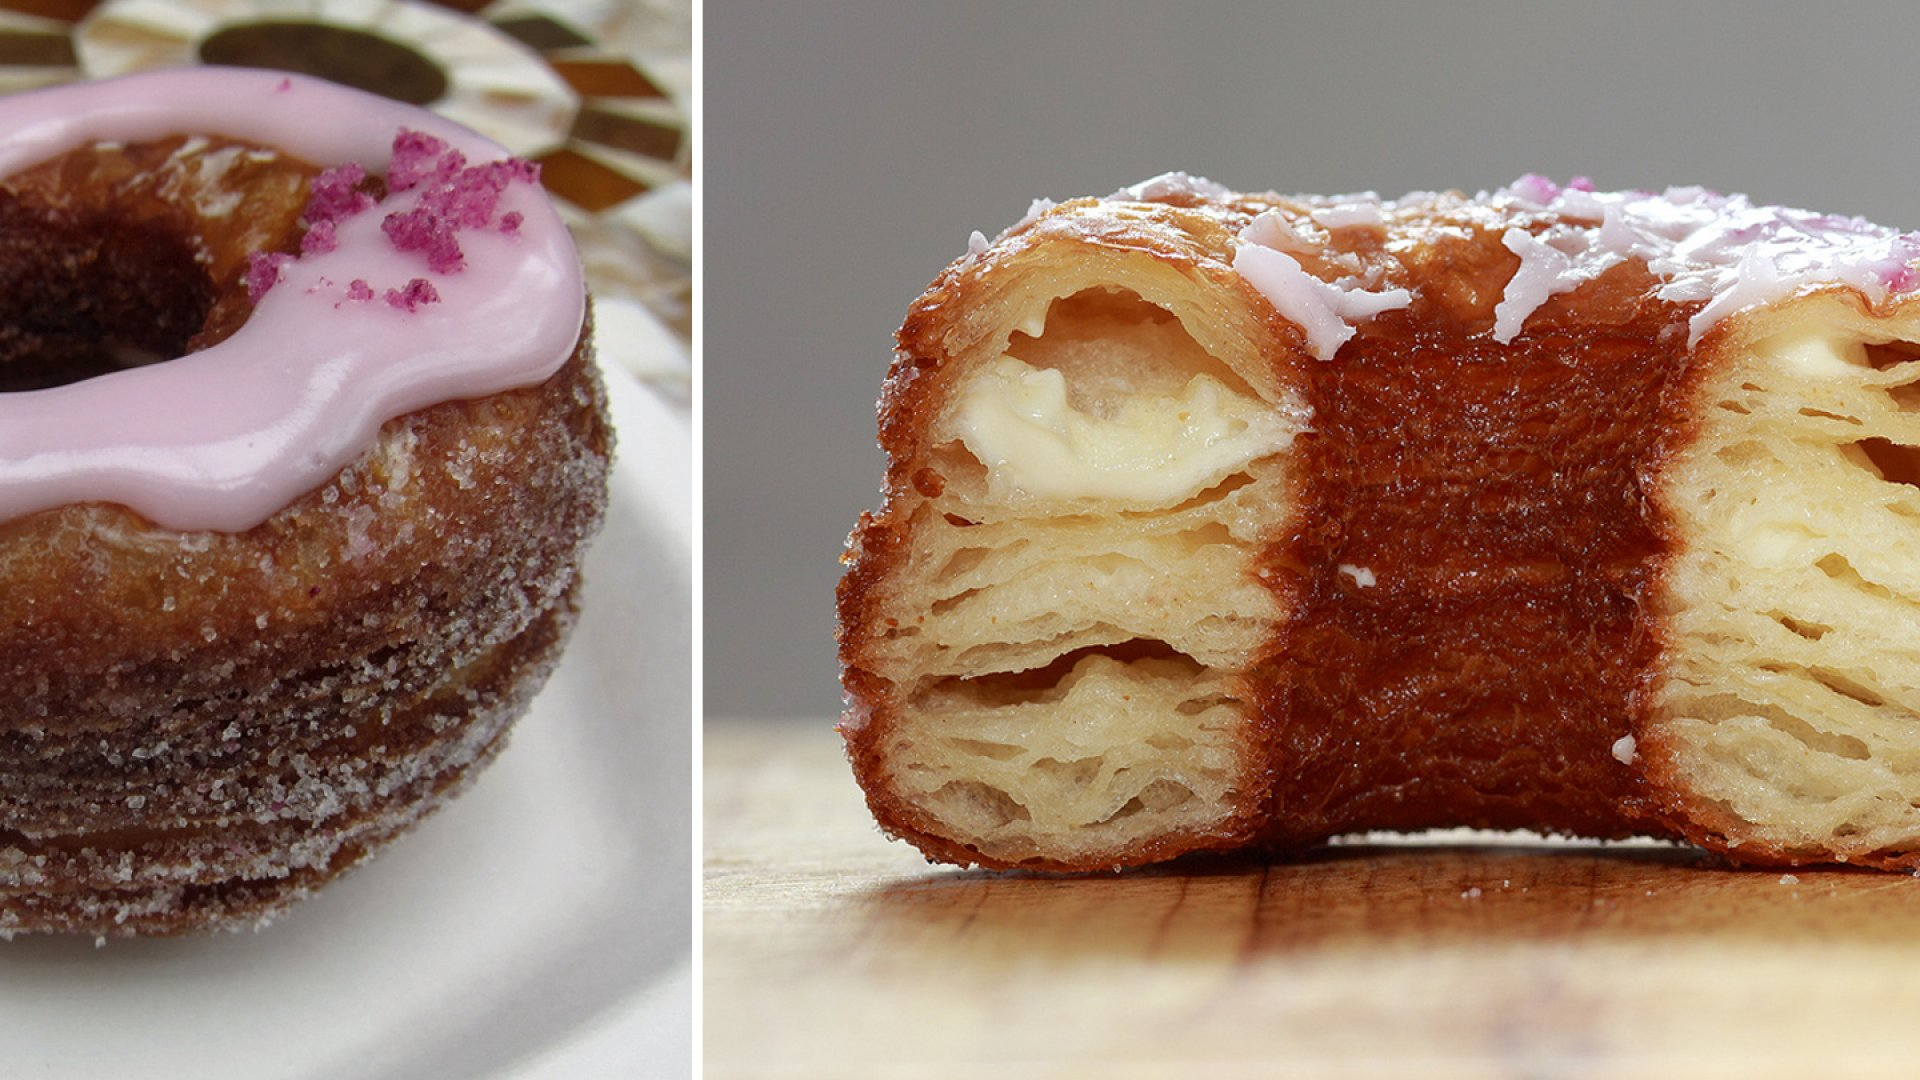 Limited editions: Cronuts, the hybrid donut-croissant, are made in daily batches of 200 by Dominique Ansel bakery in New York. They sell out in minutes.